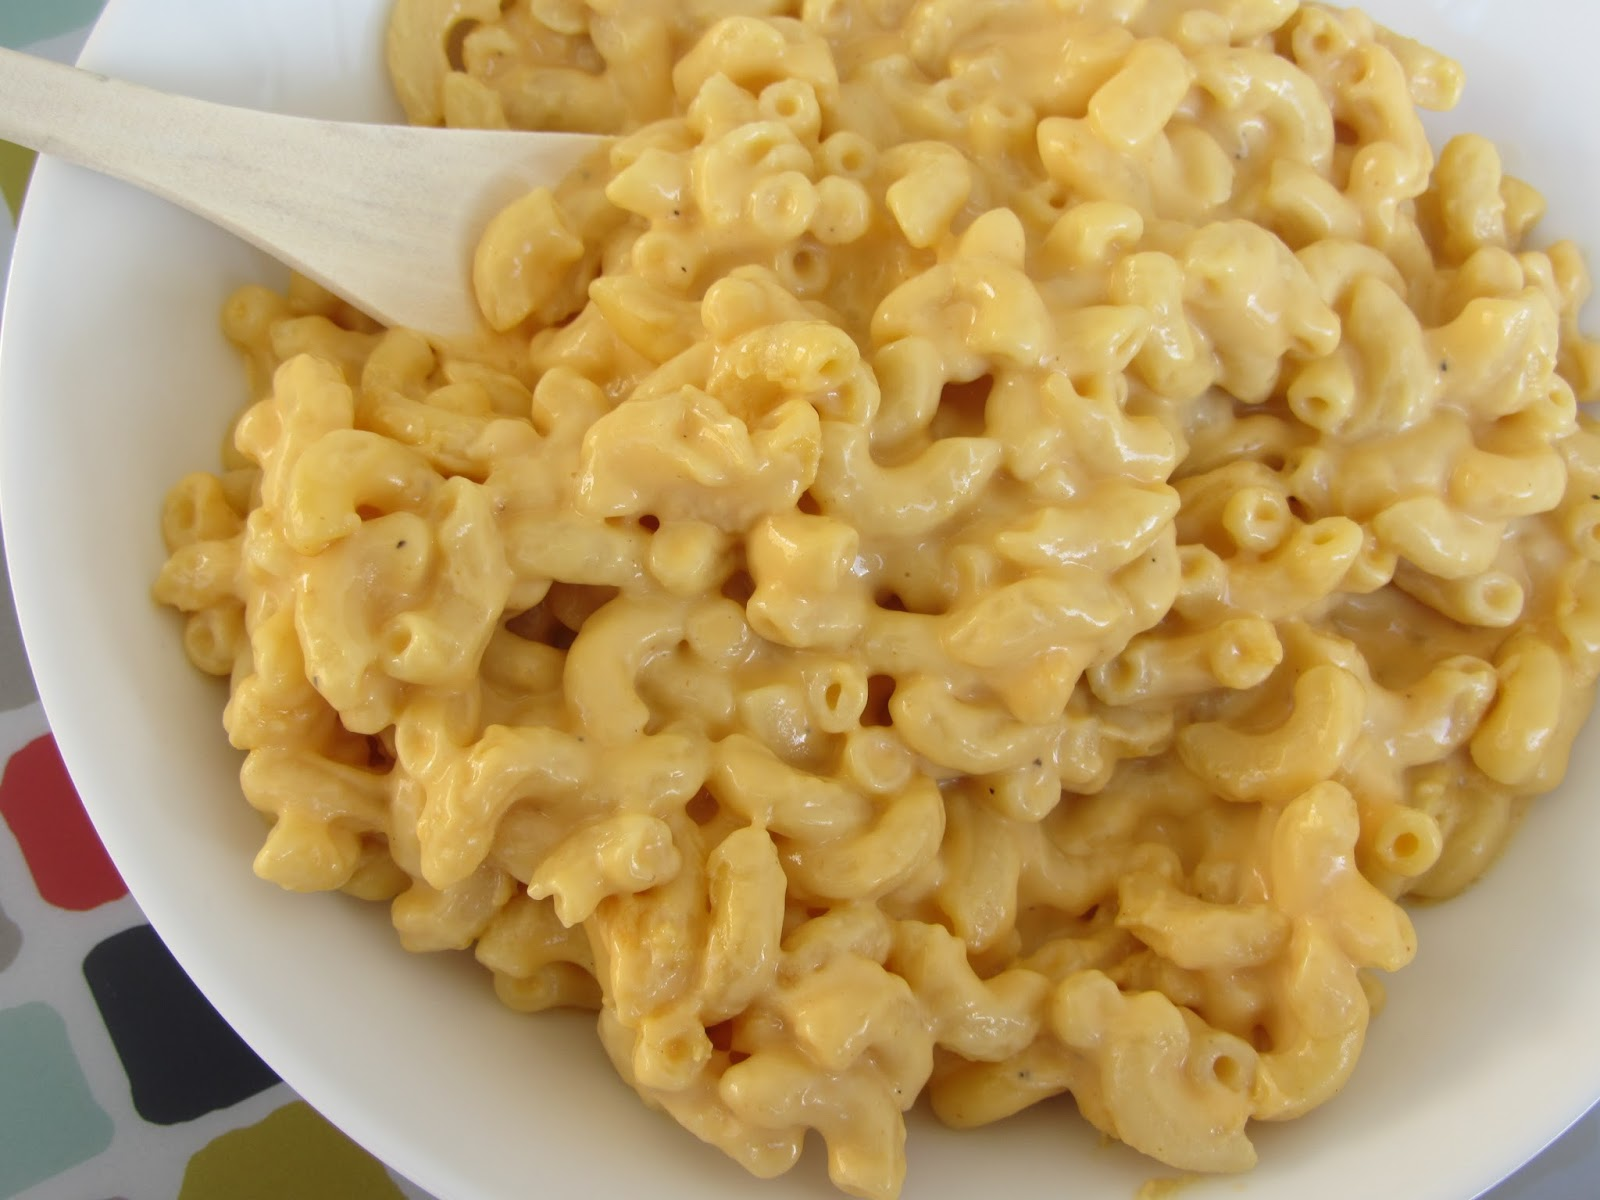 Been There Baked That: Stovetop Macaroni and Cheese